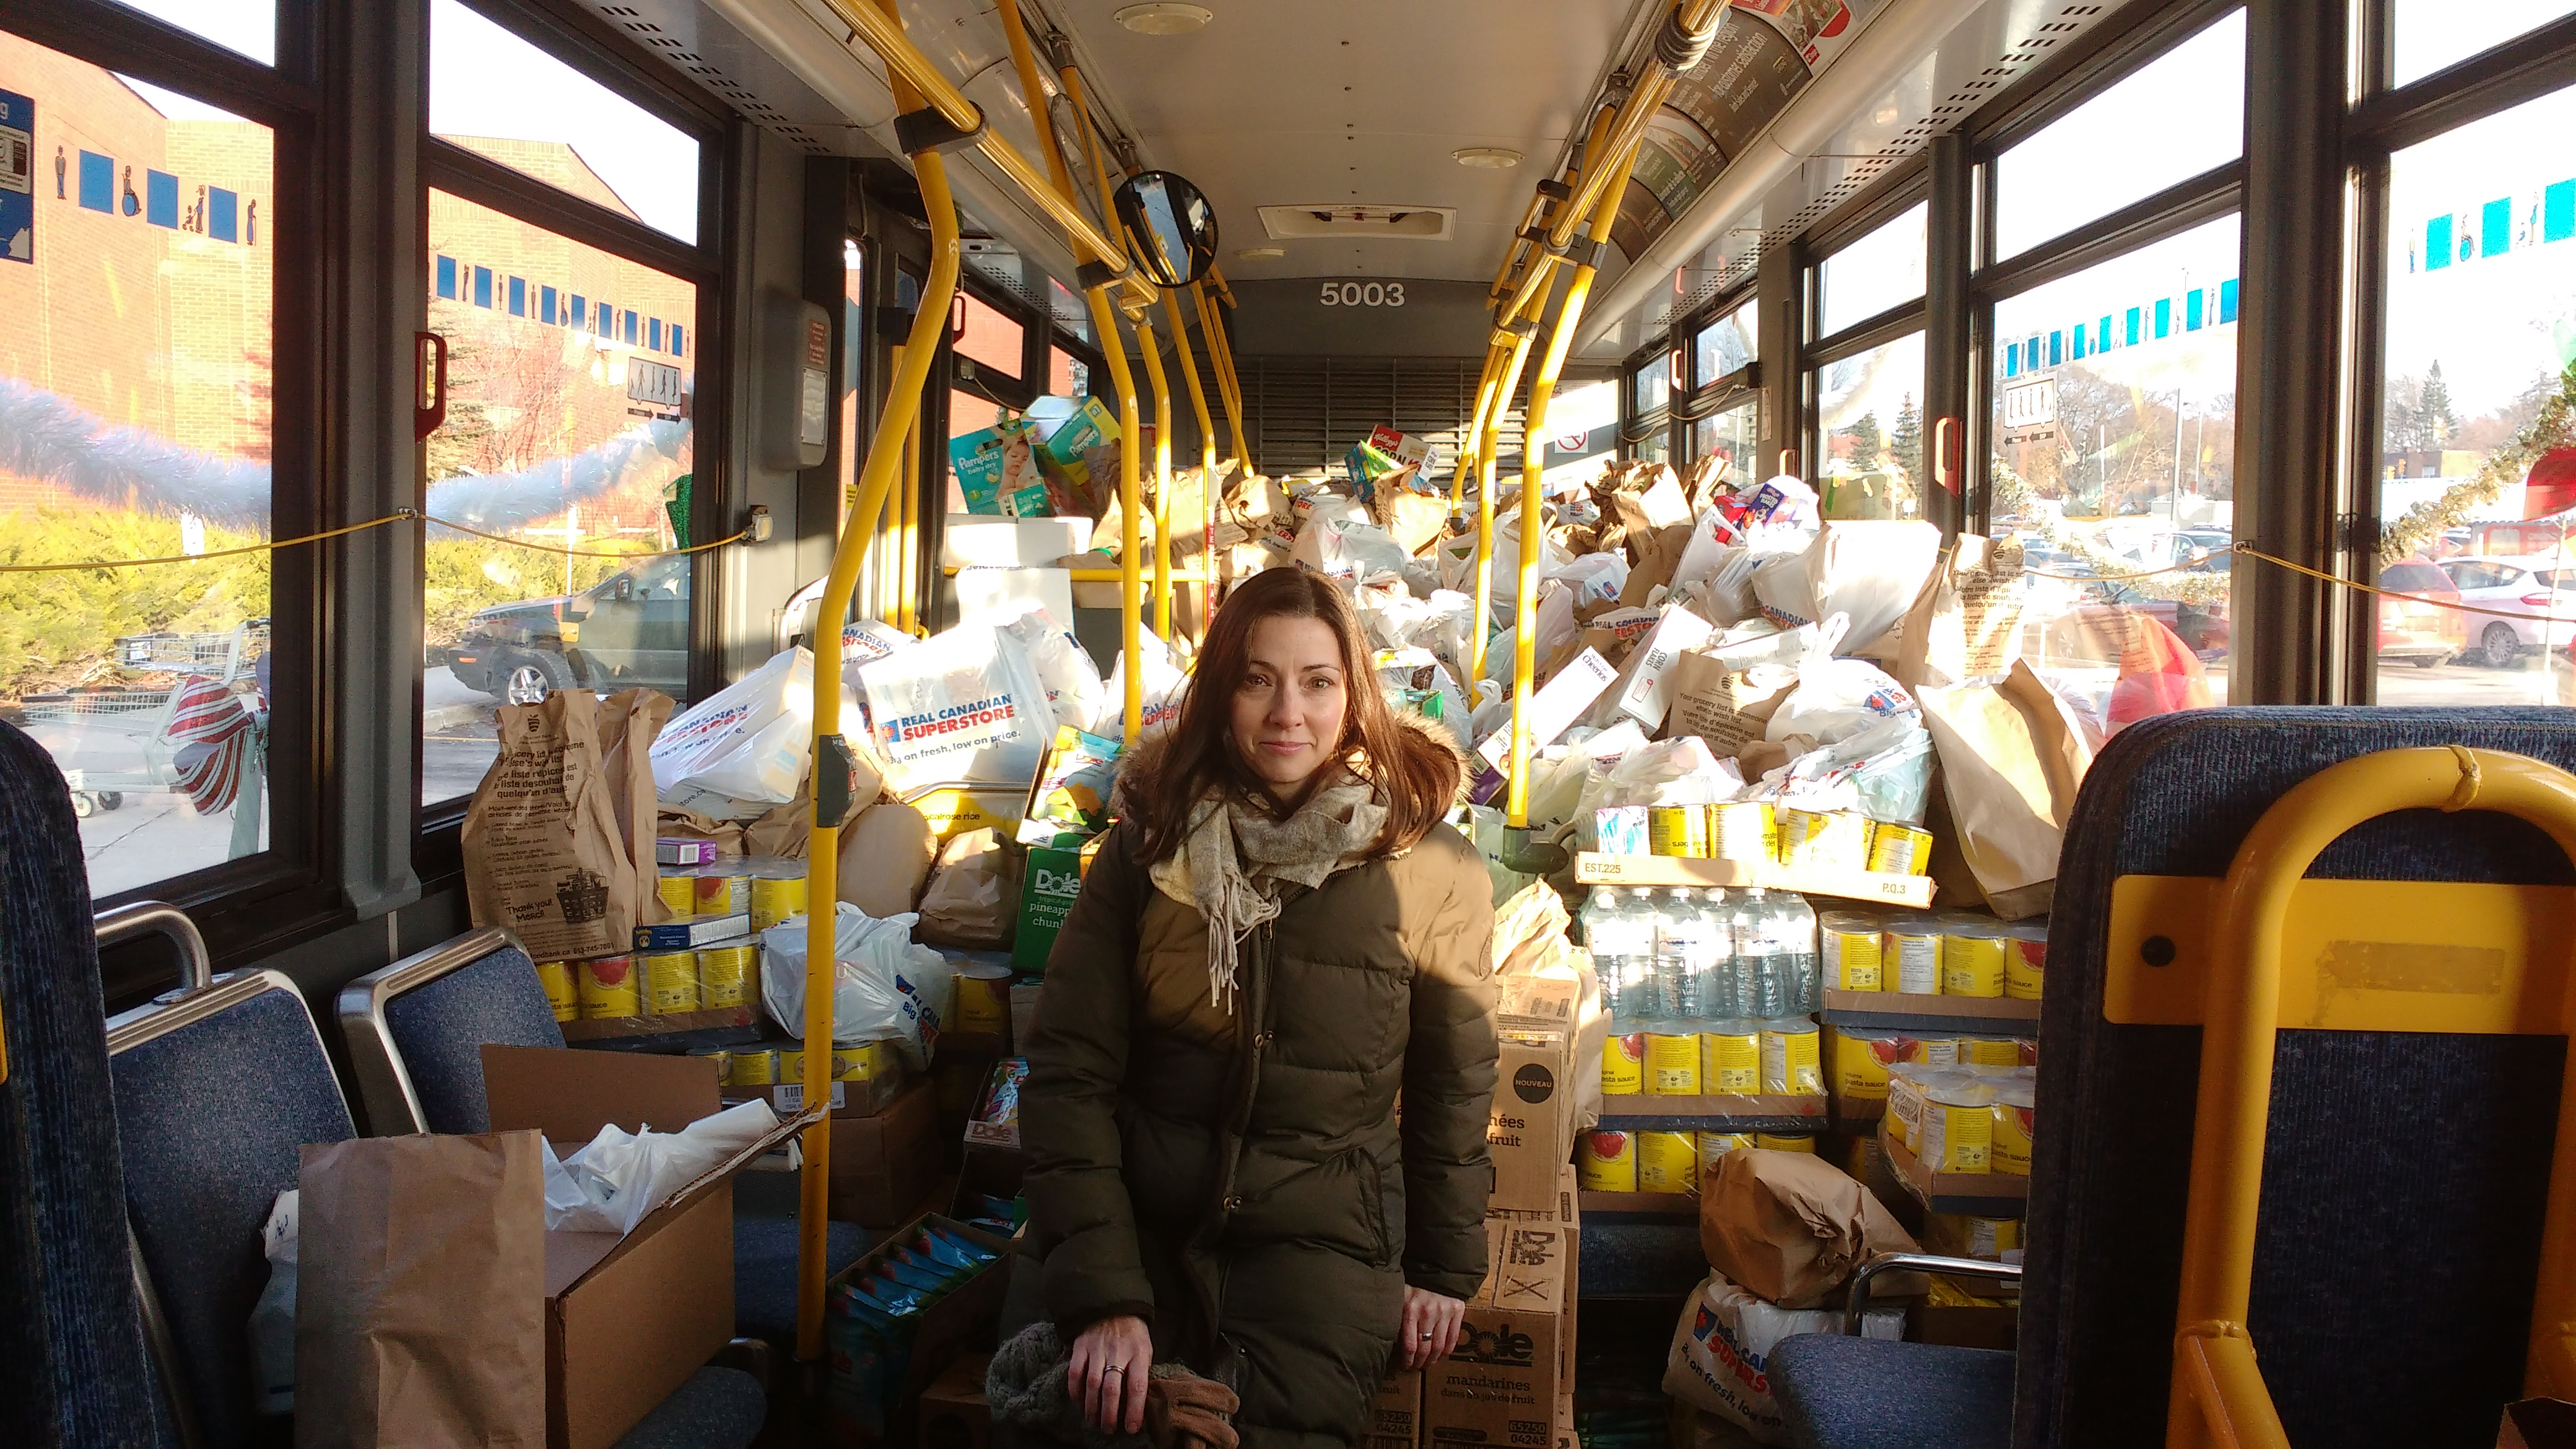 OC Transpo Annual Christmas food drive